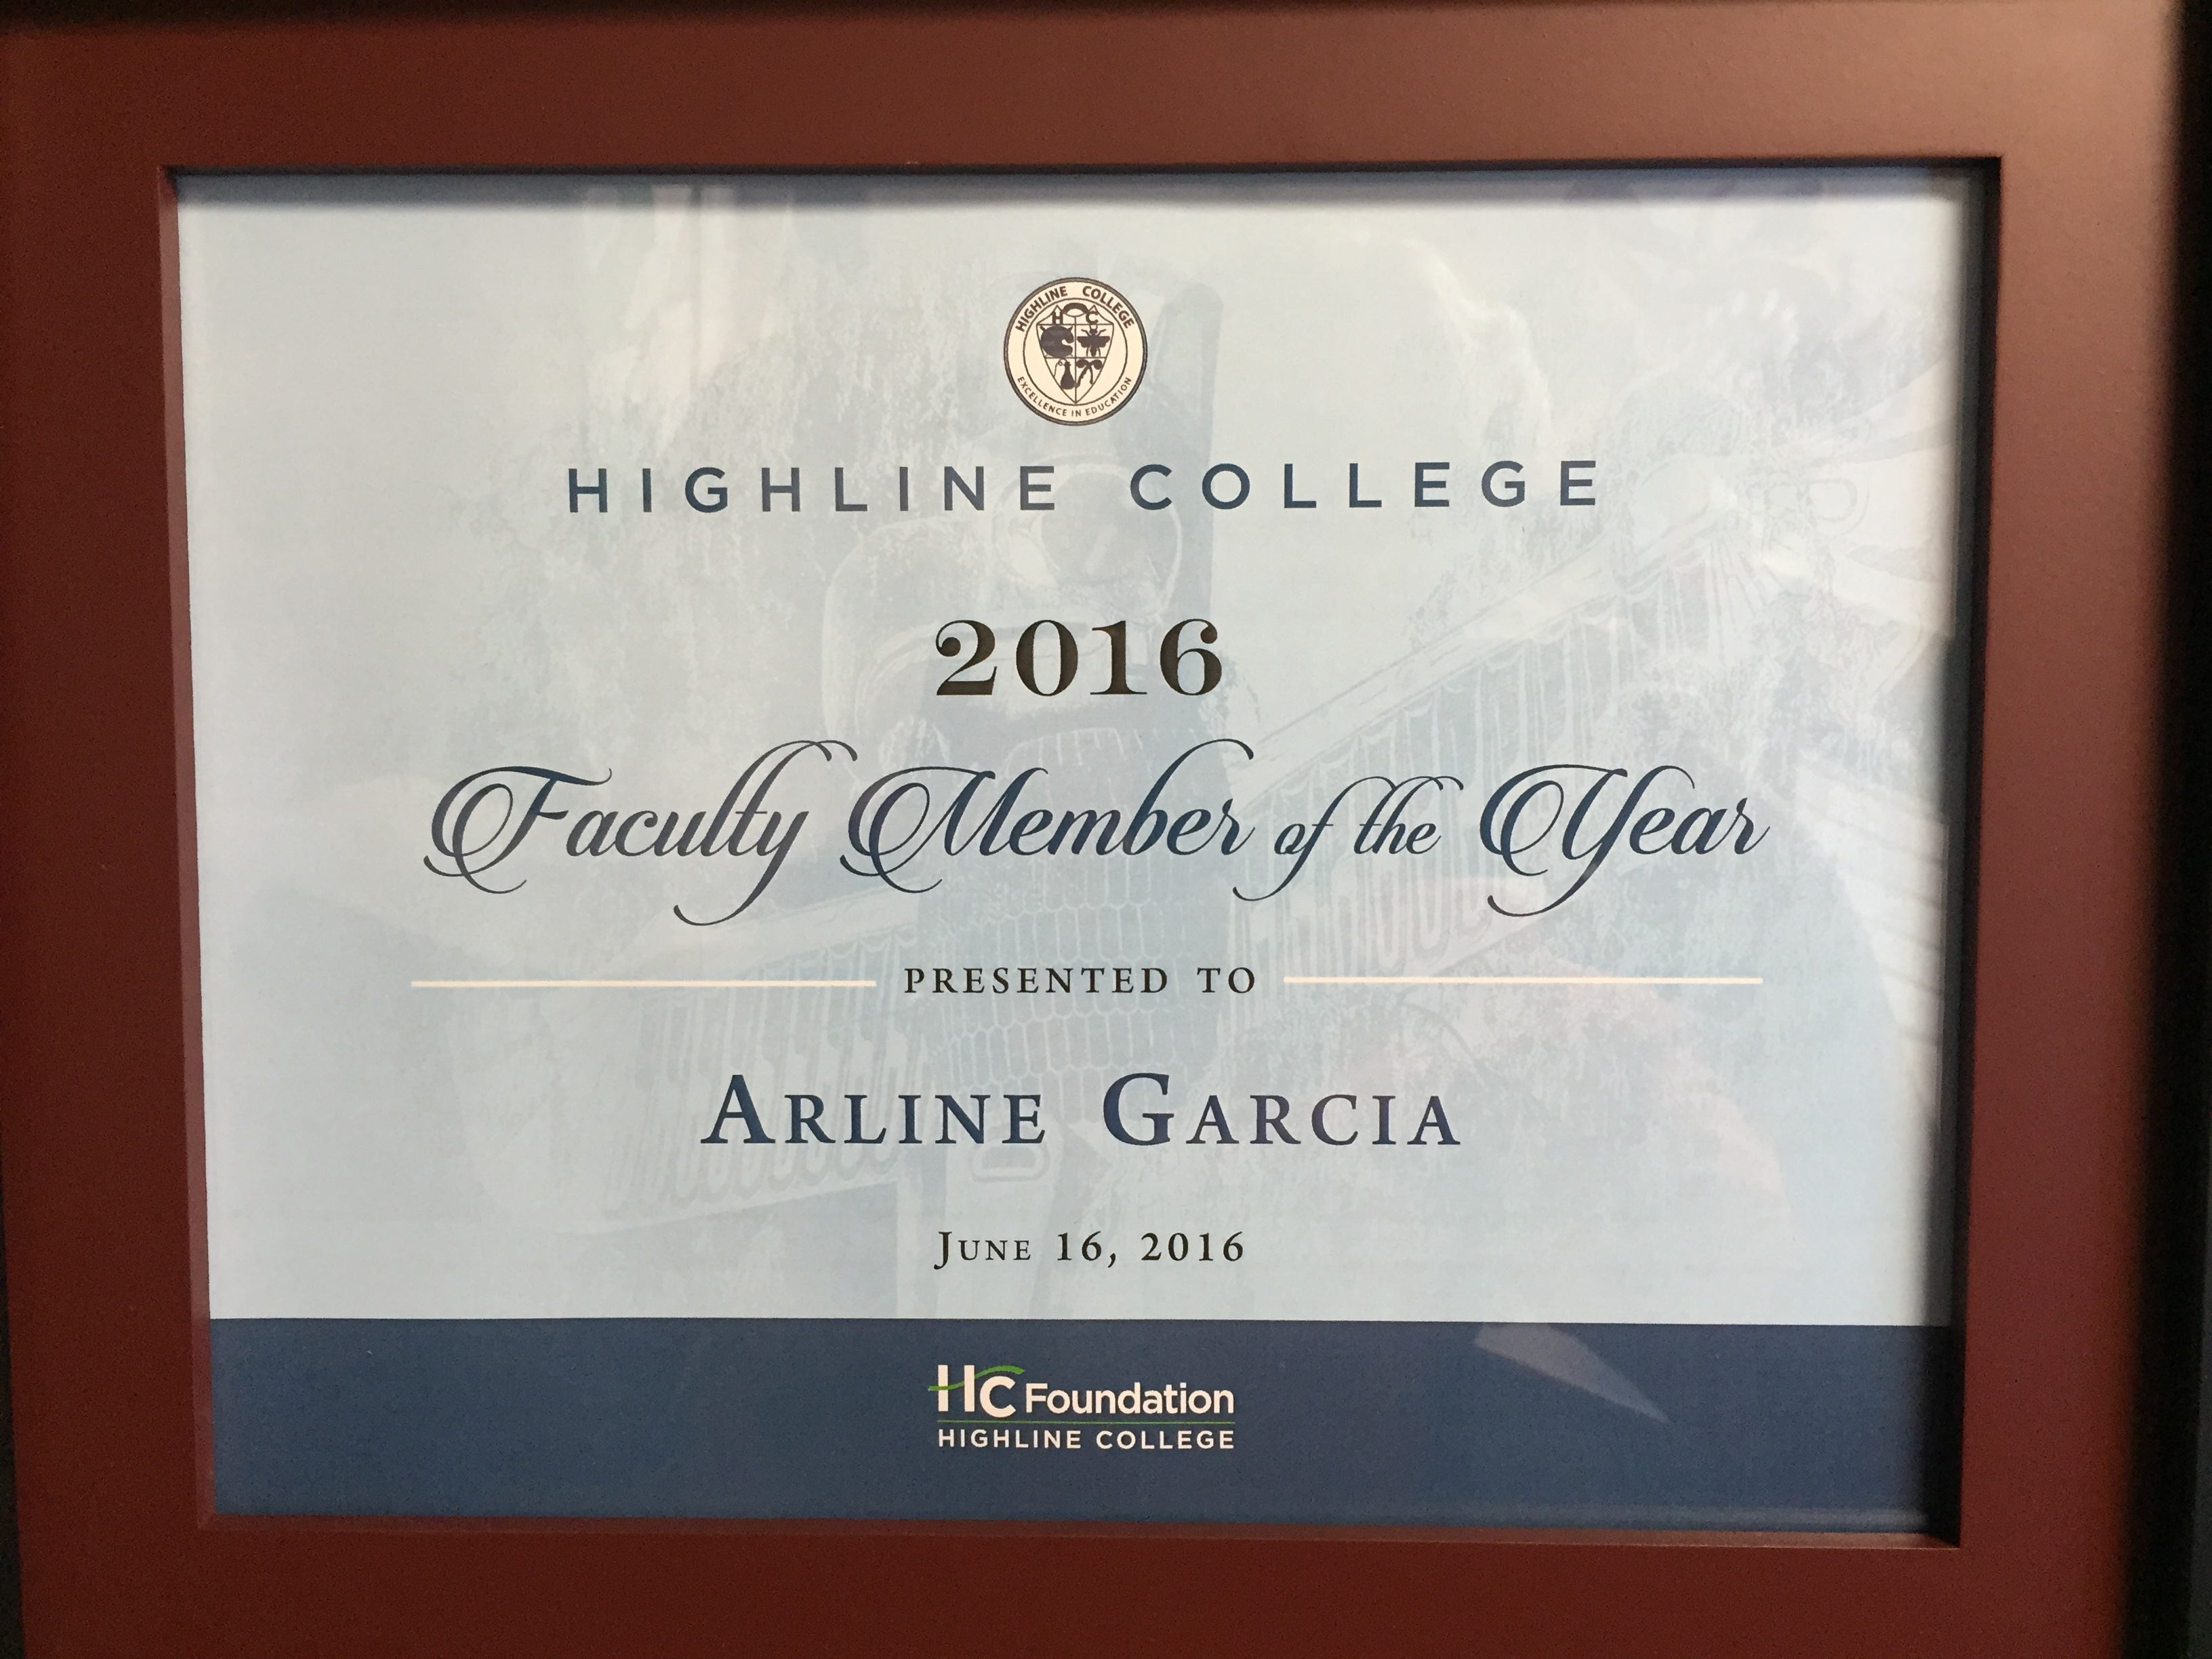 Arline Garcia: Faculty Member of the Year